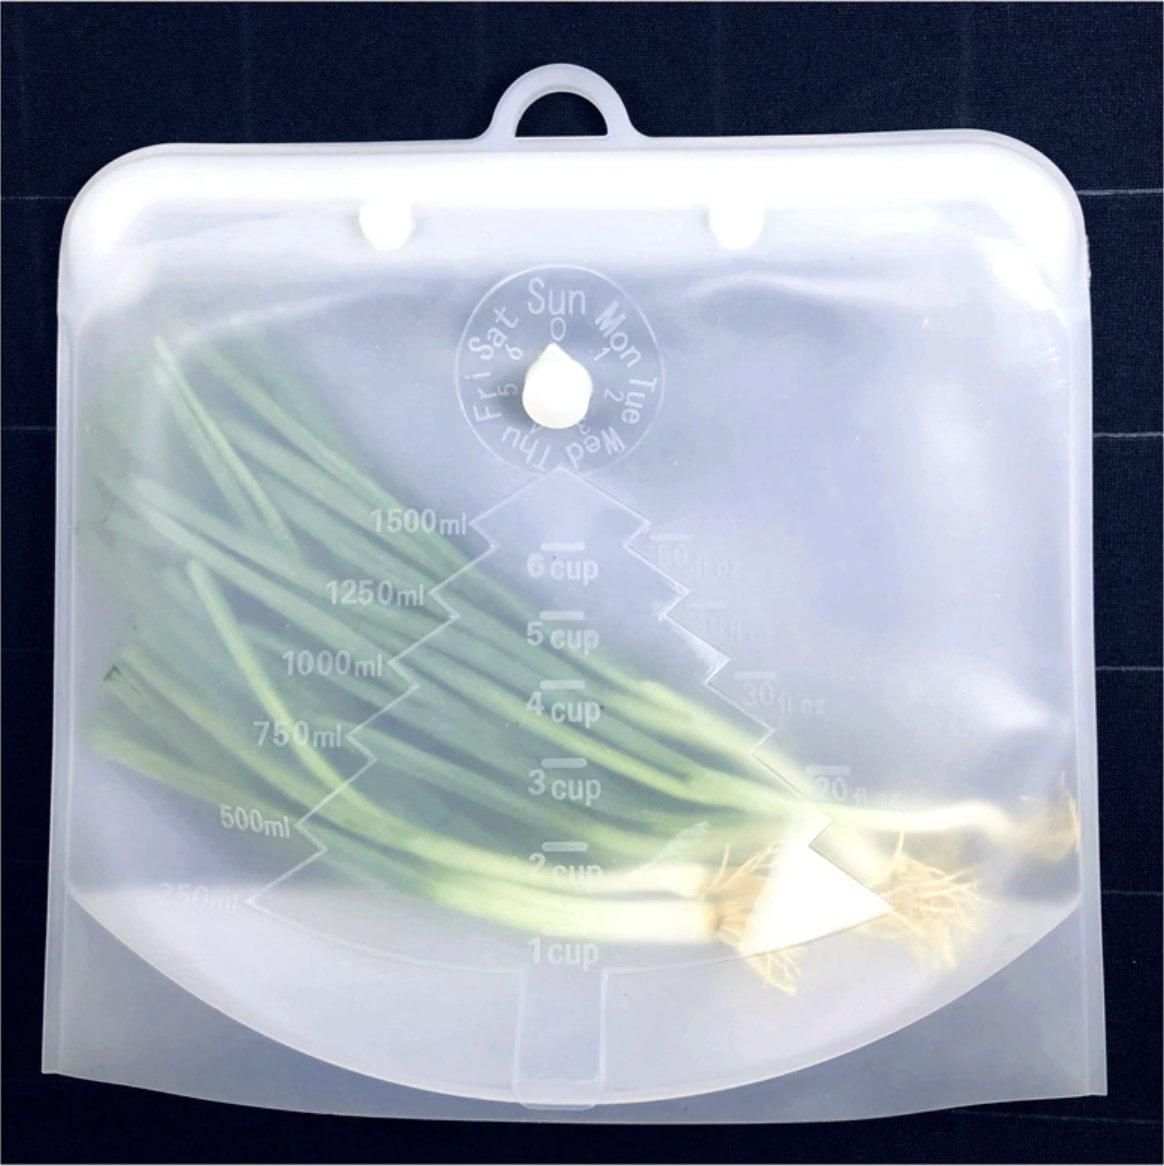 2PC 1.5L & 1L Reusable Silicone Ziplock Bags Leak Proof - Ecosifu